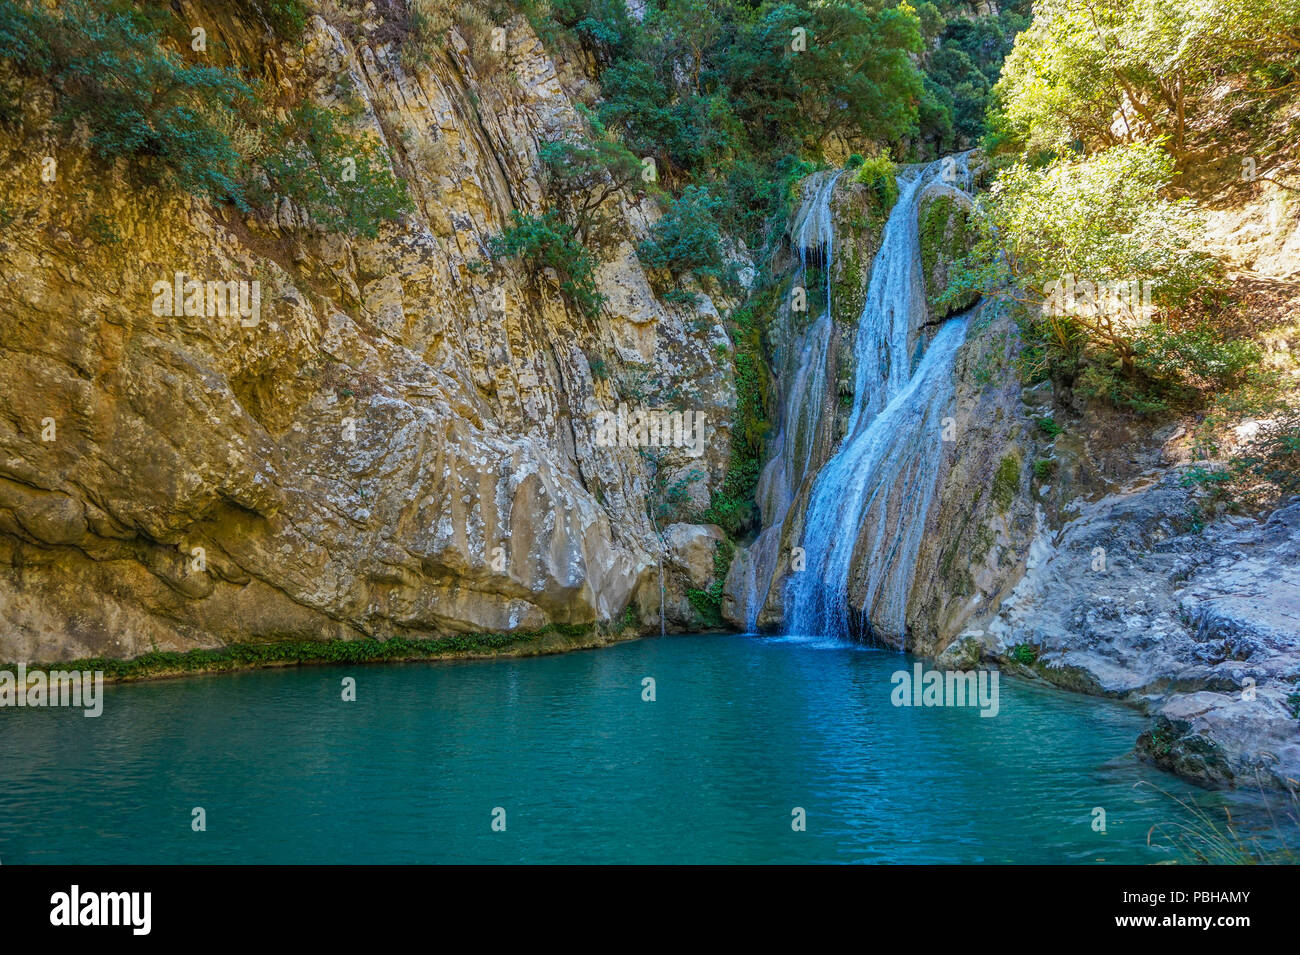 In the community of Haravgi of the Municipality of Messina, lies Polylimnio, a complex of many natural lakes. Stock Photo